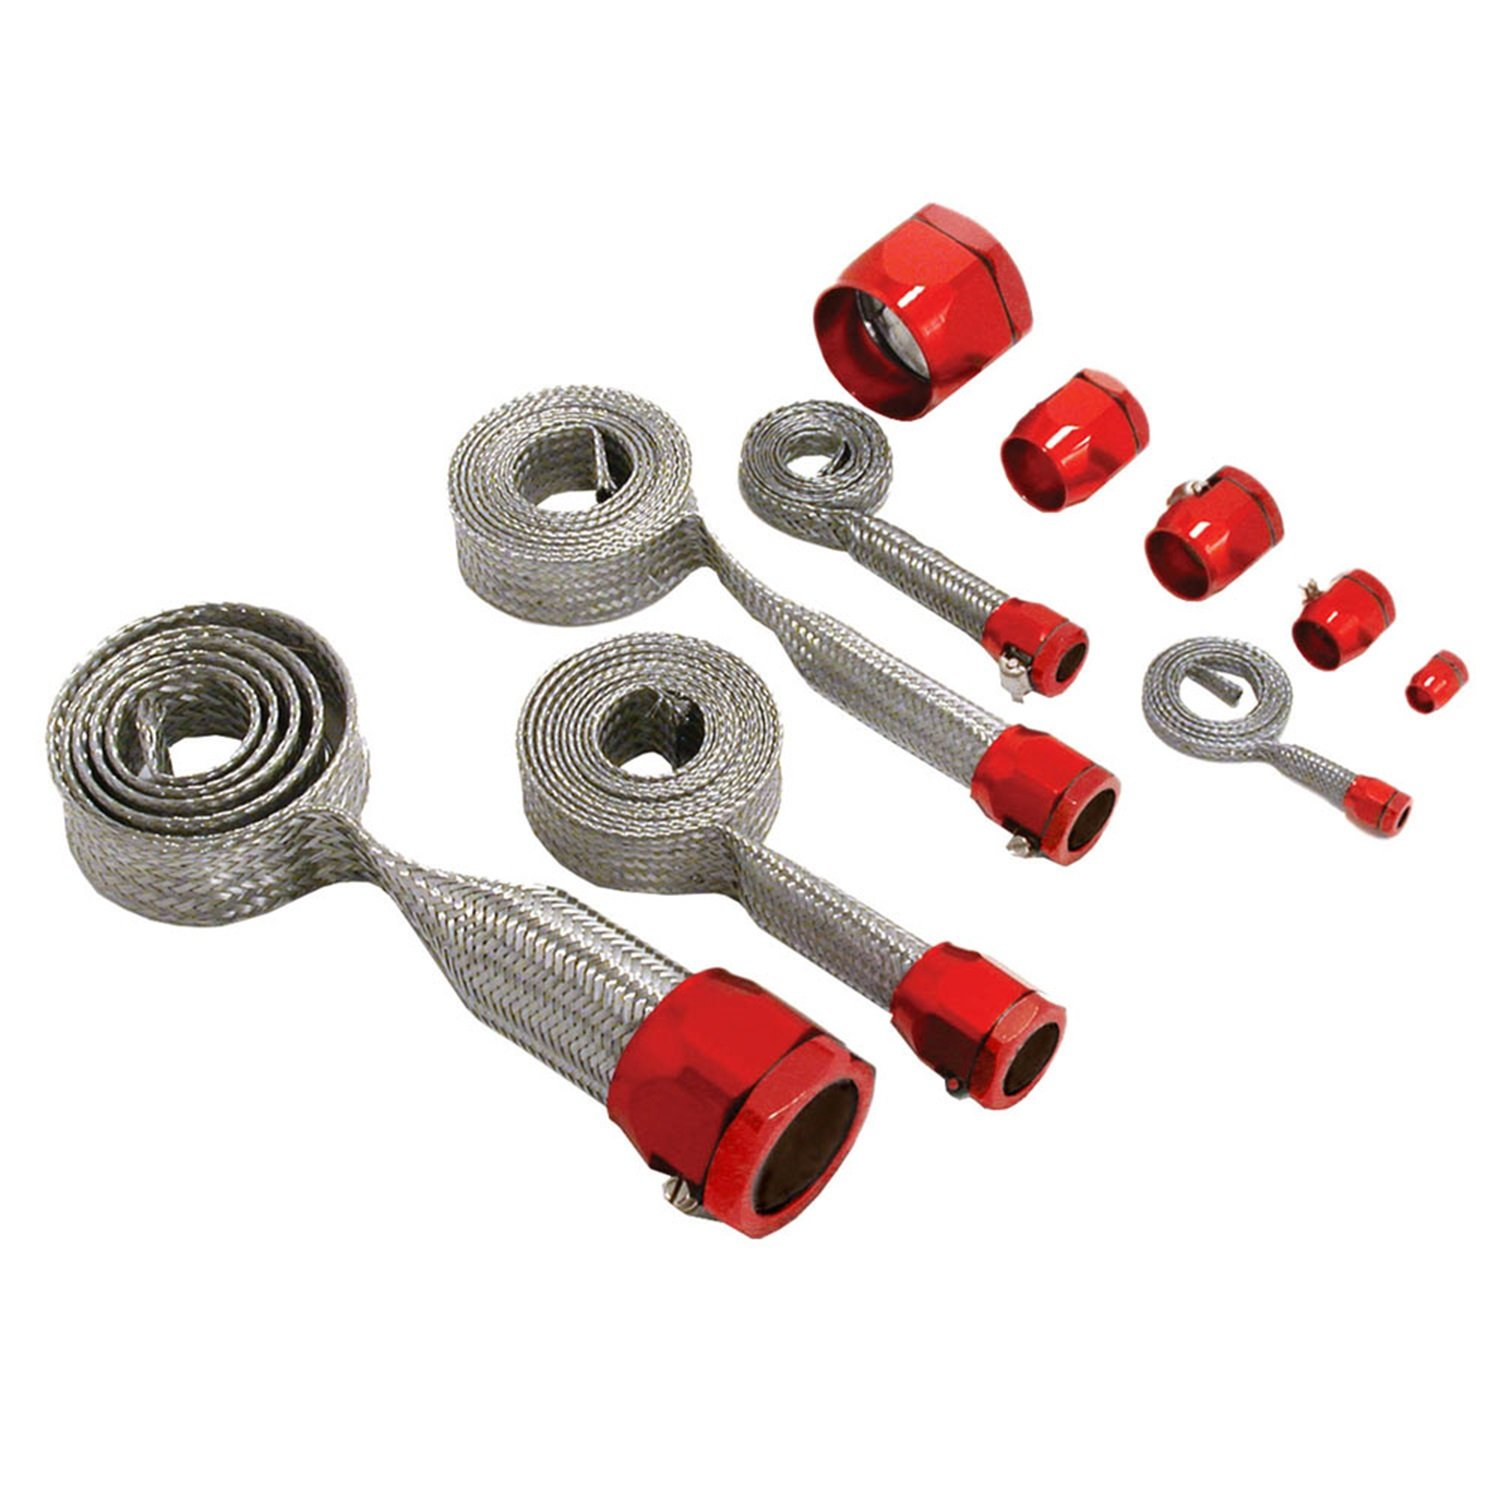 Spectre Performance 7492 Red Stainless Steel Sleeving Kit